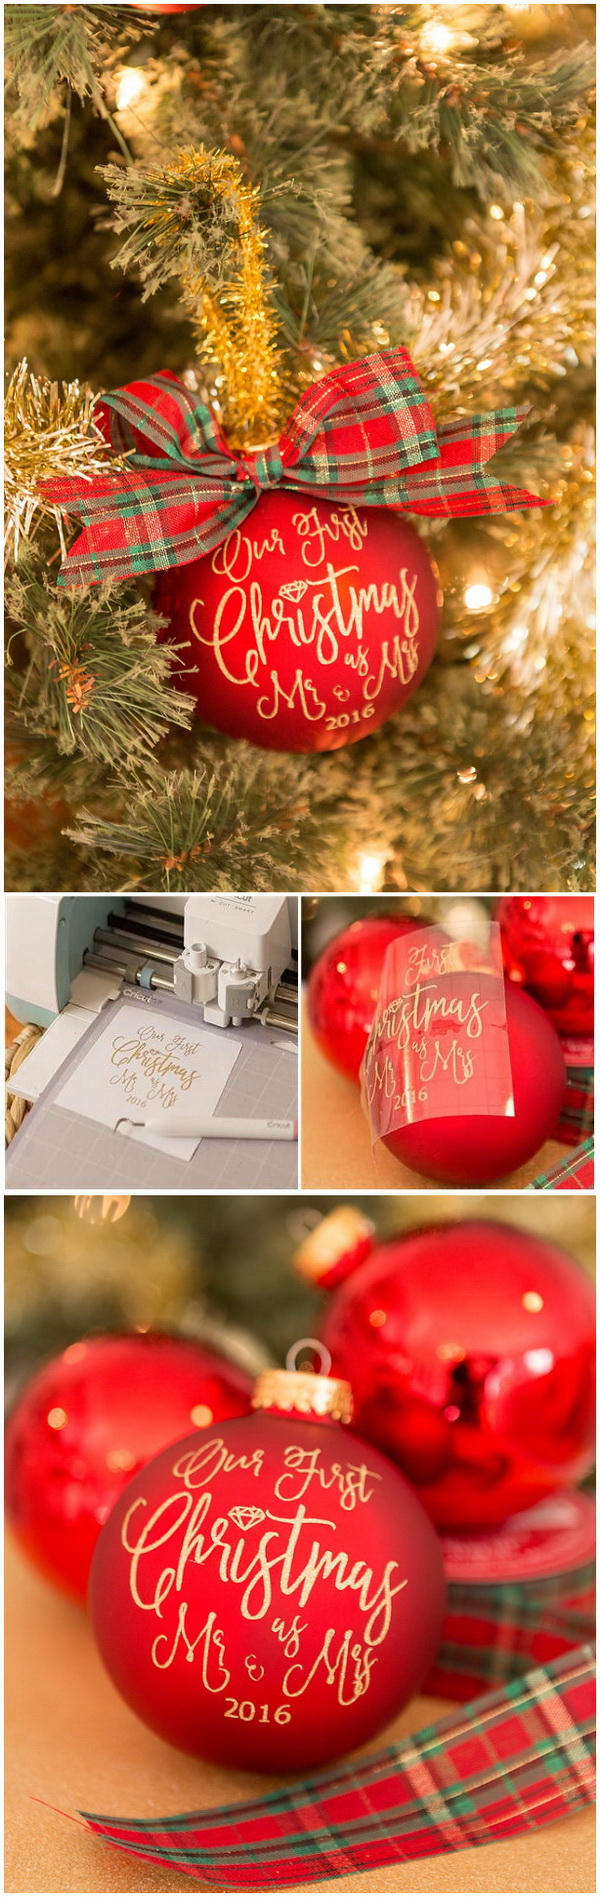 DIY Christmas Newlywed Ornaments. Festive ornaments for Christmas tree that even your kids can make in no time!